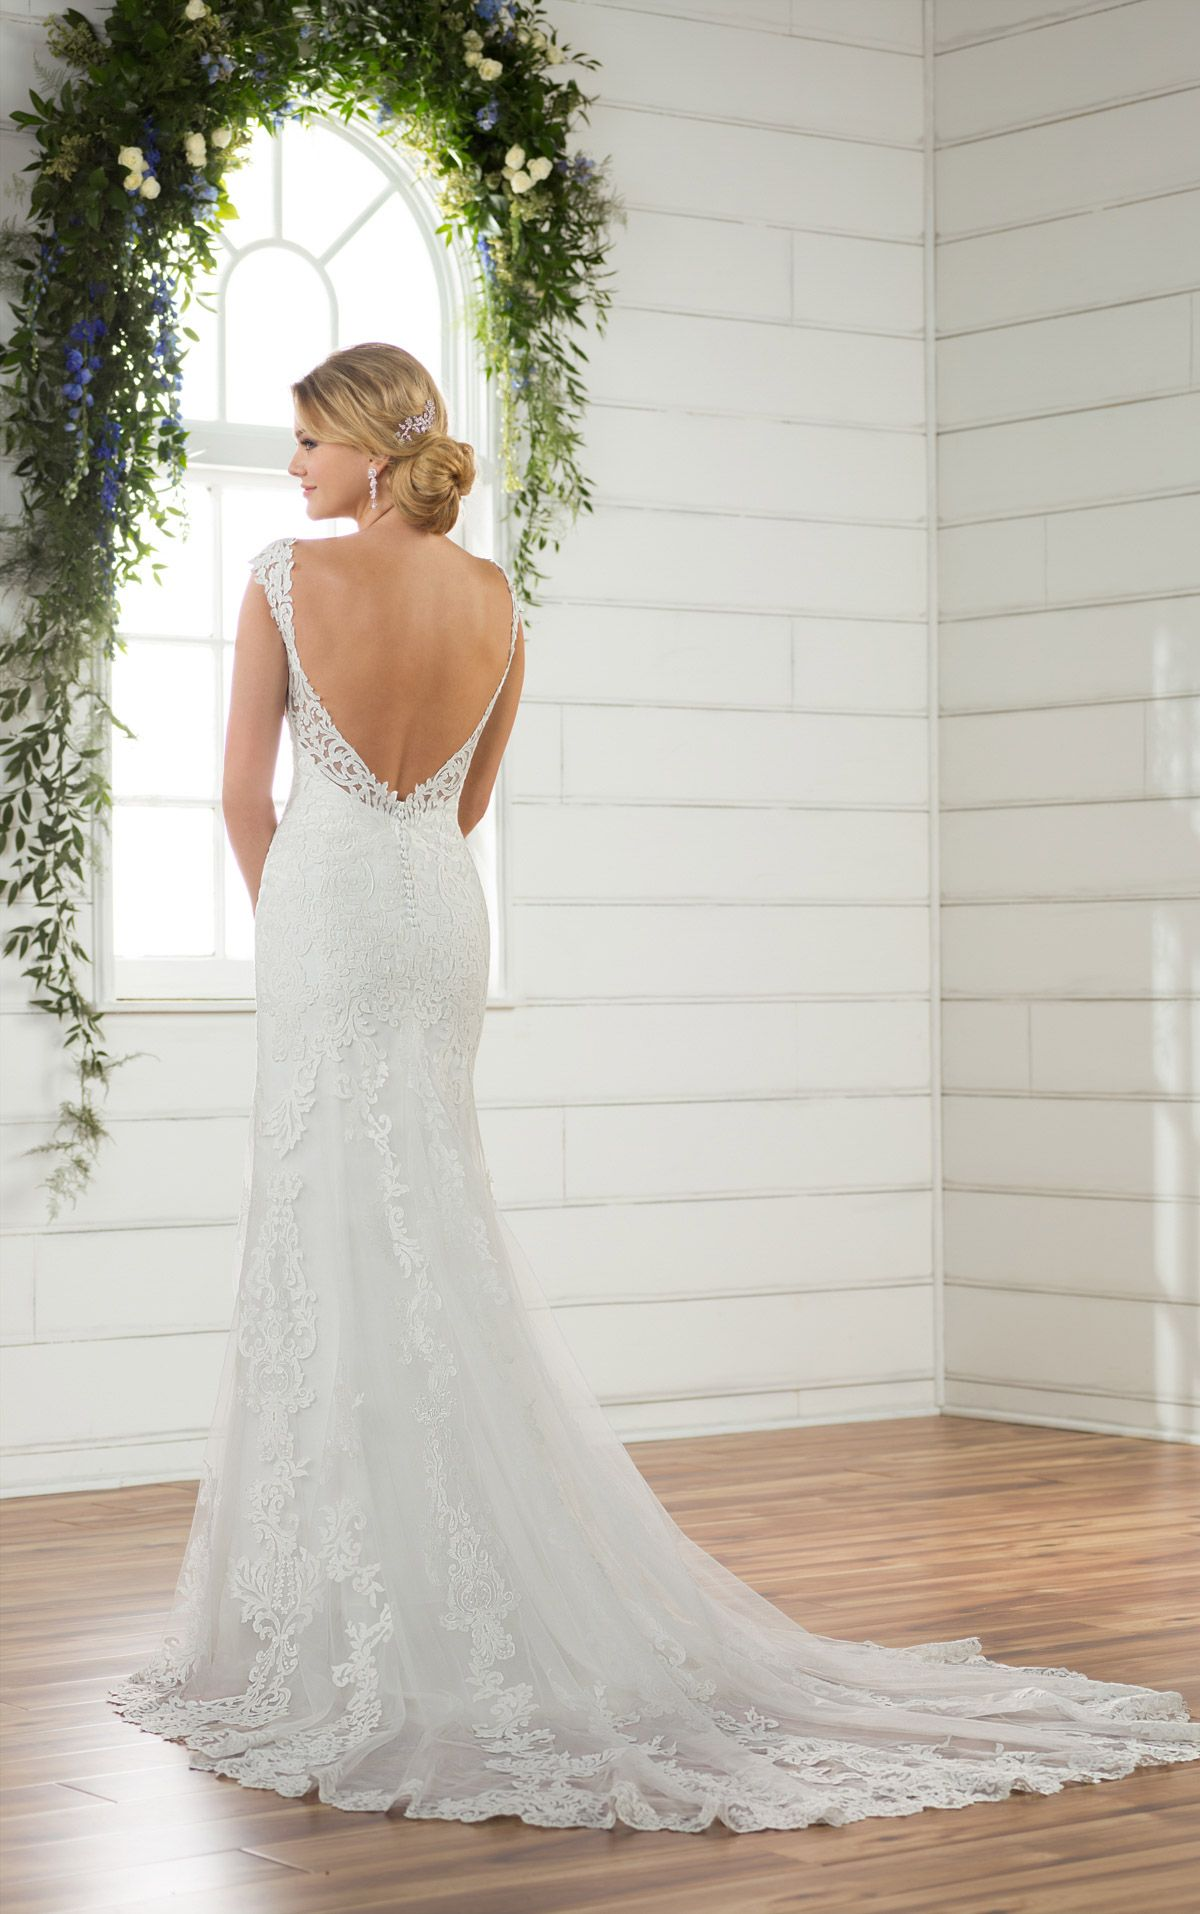 df11edc77a12 This backless wedding dress is the ethereal wedding dress brides love! A  relaxed column shape feels casual while remaining true to classic bridal  style.